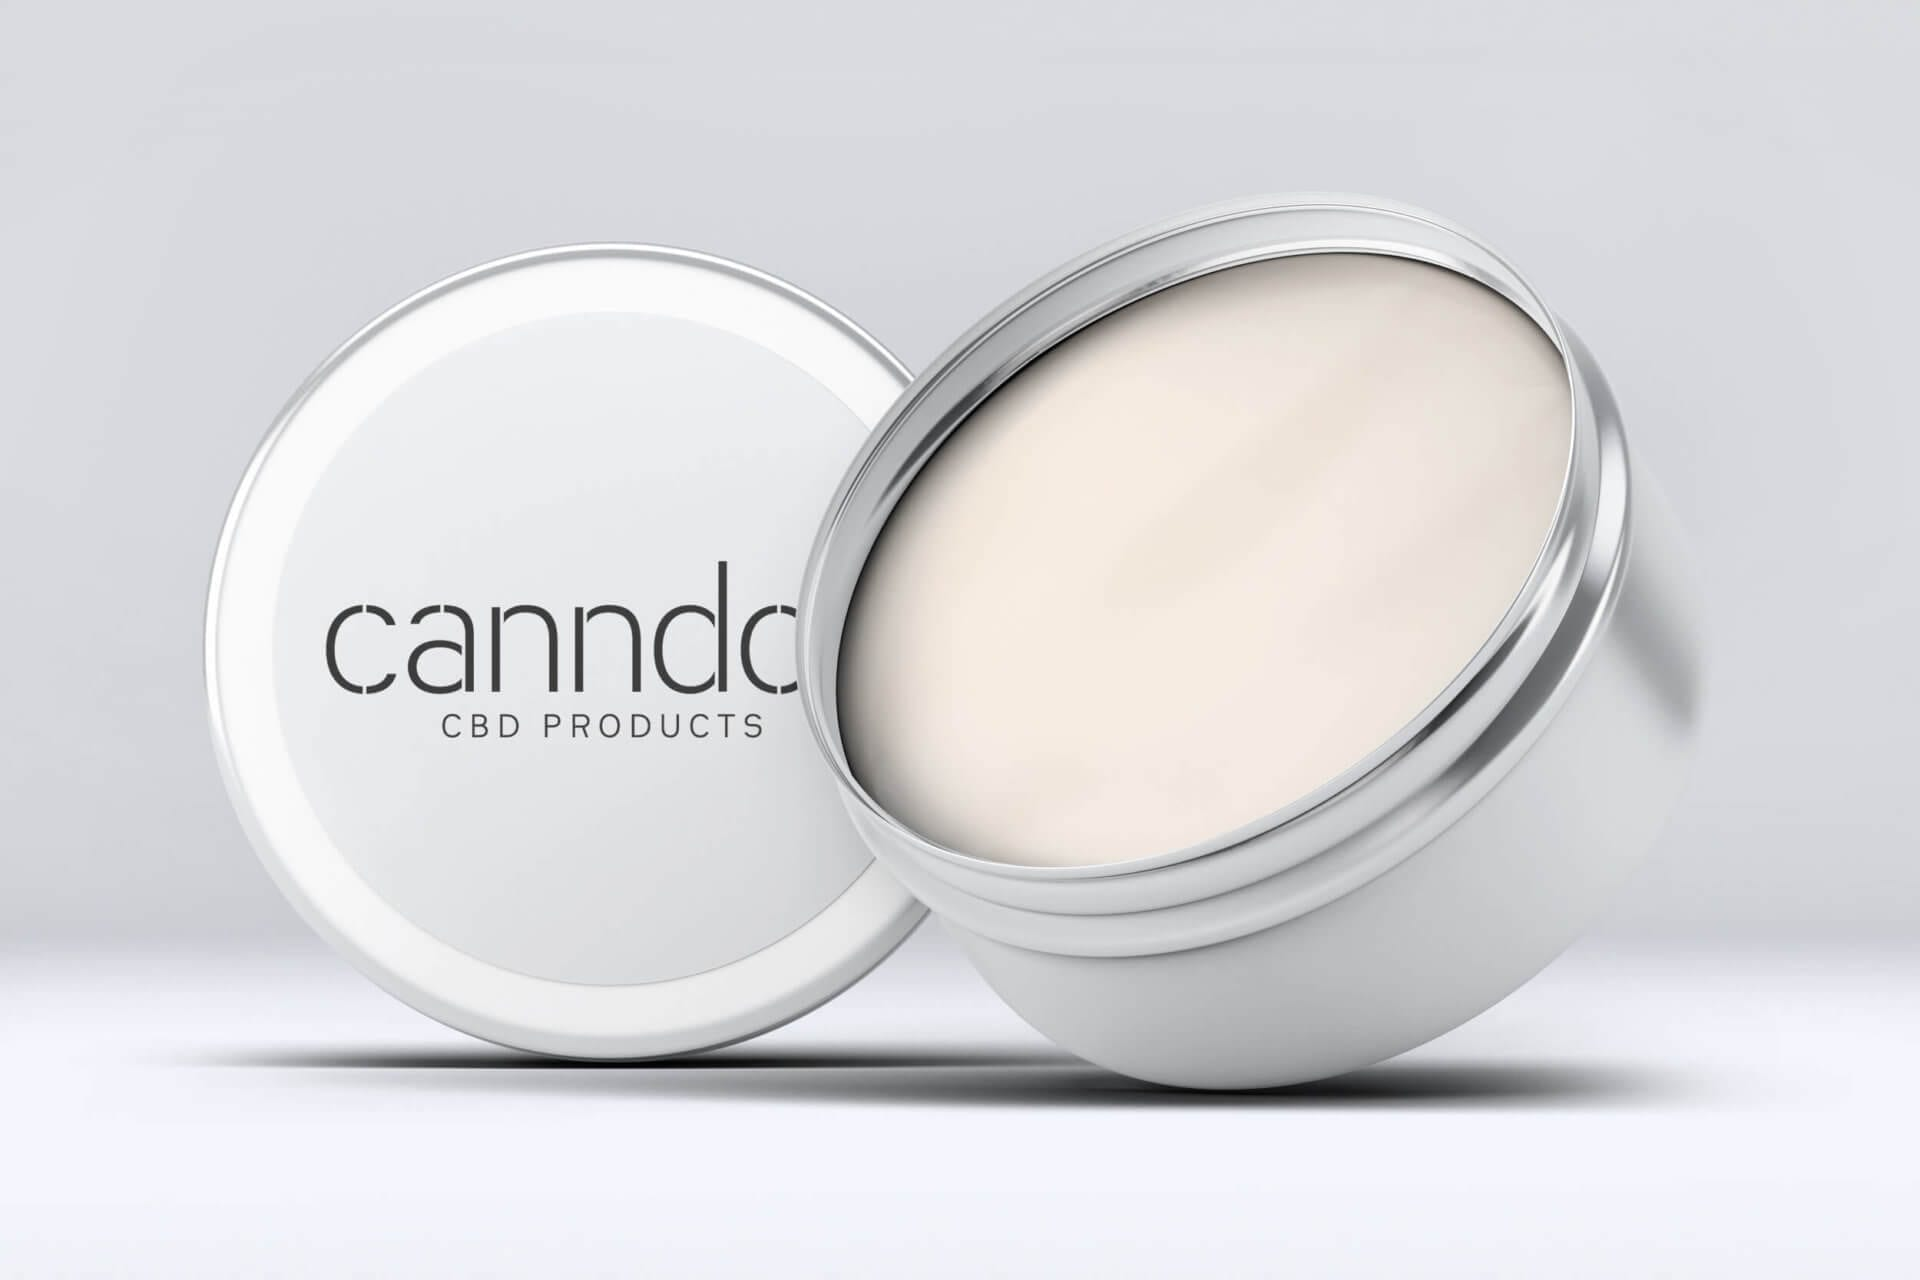 Canndor product